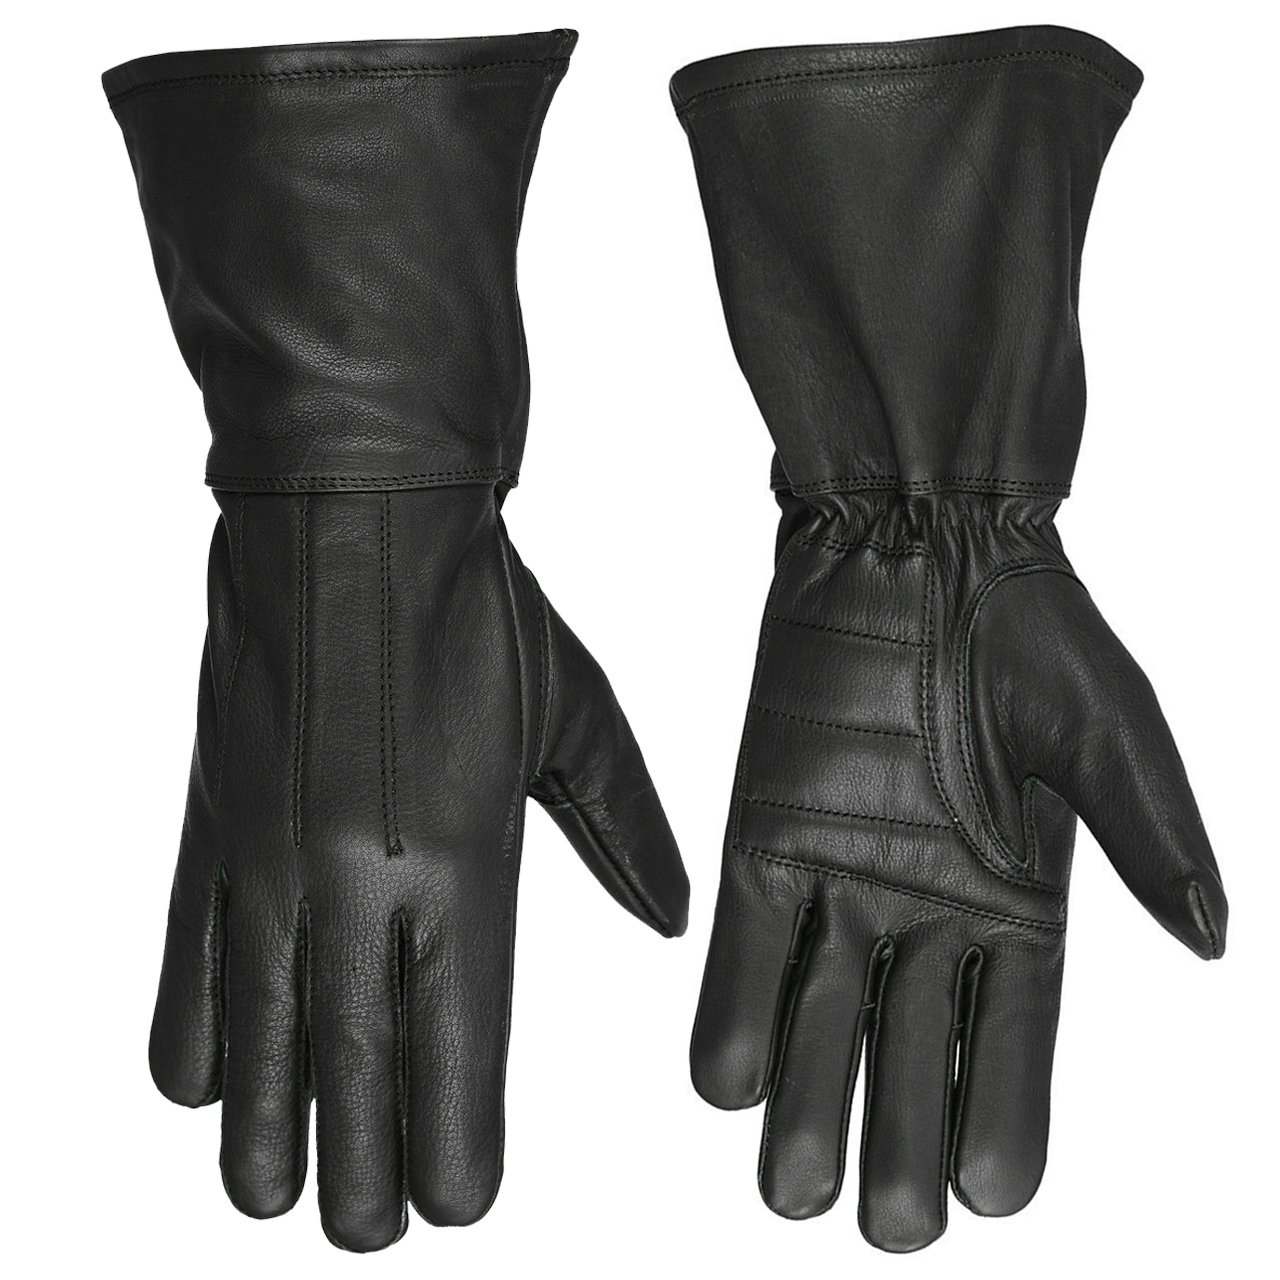 Hugger Women's Classic Motorcycle Gloves Unlined Seasonal Wind Stopper Gauntlet (Small, Black)